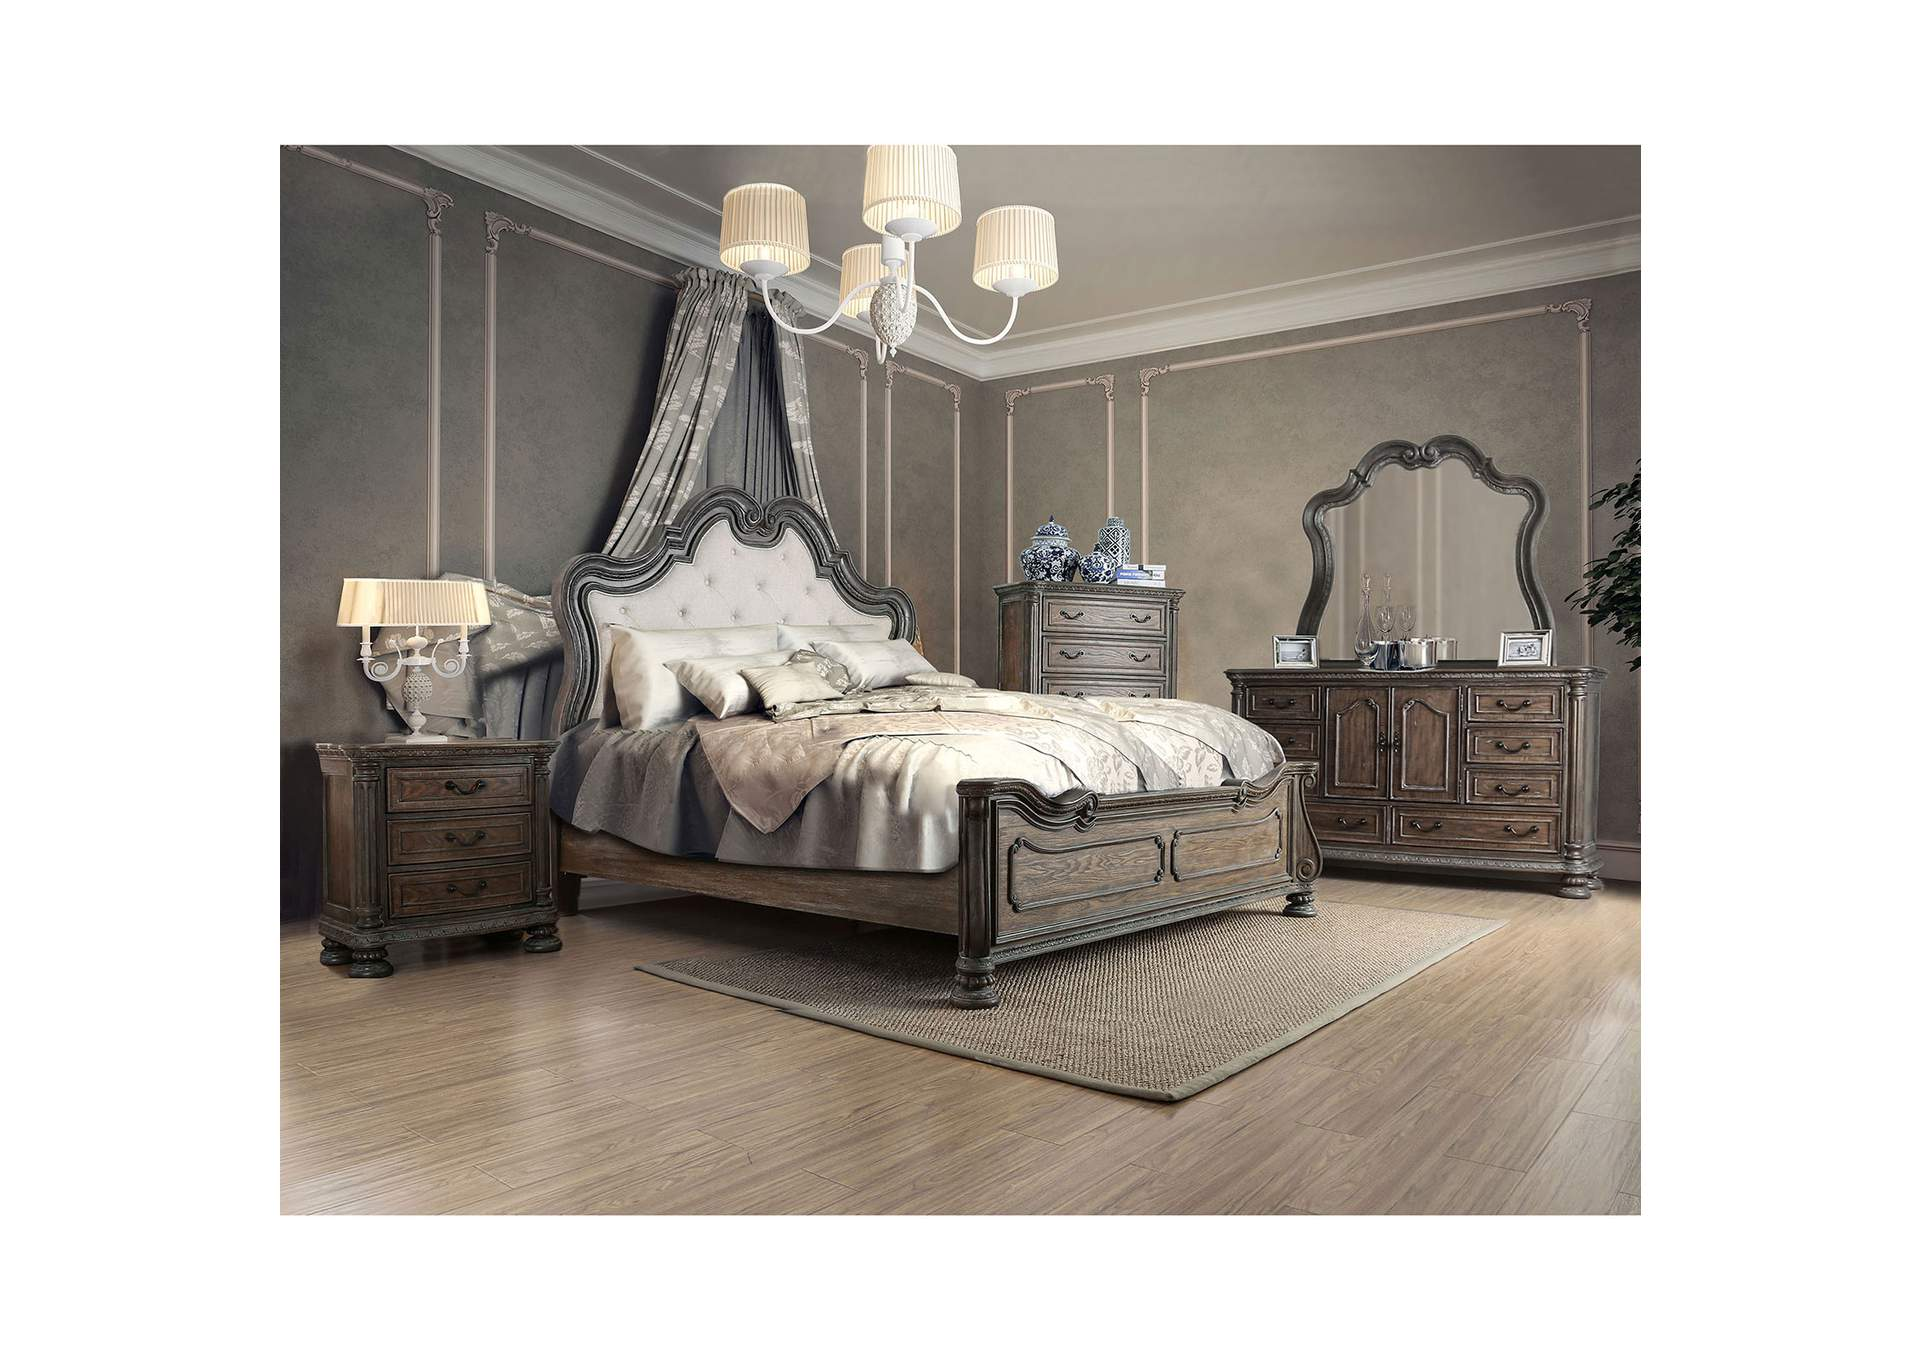 Ariadne Rustic Natural Tone Queen Bed,Furniture of America